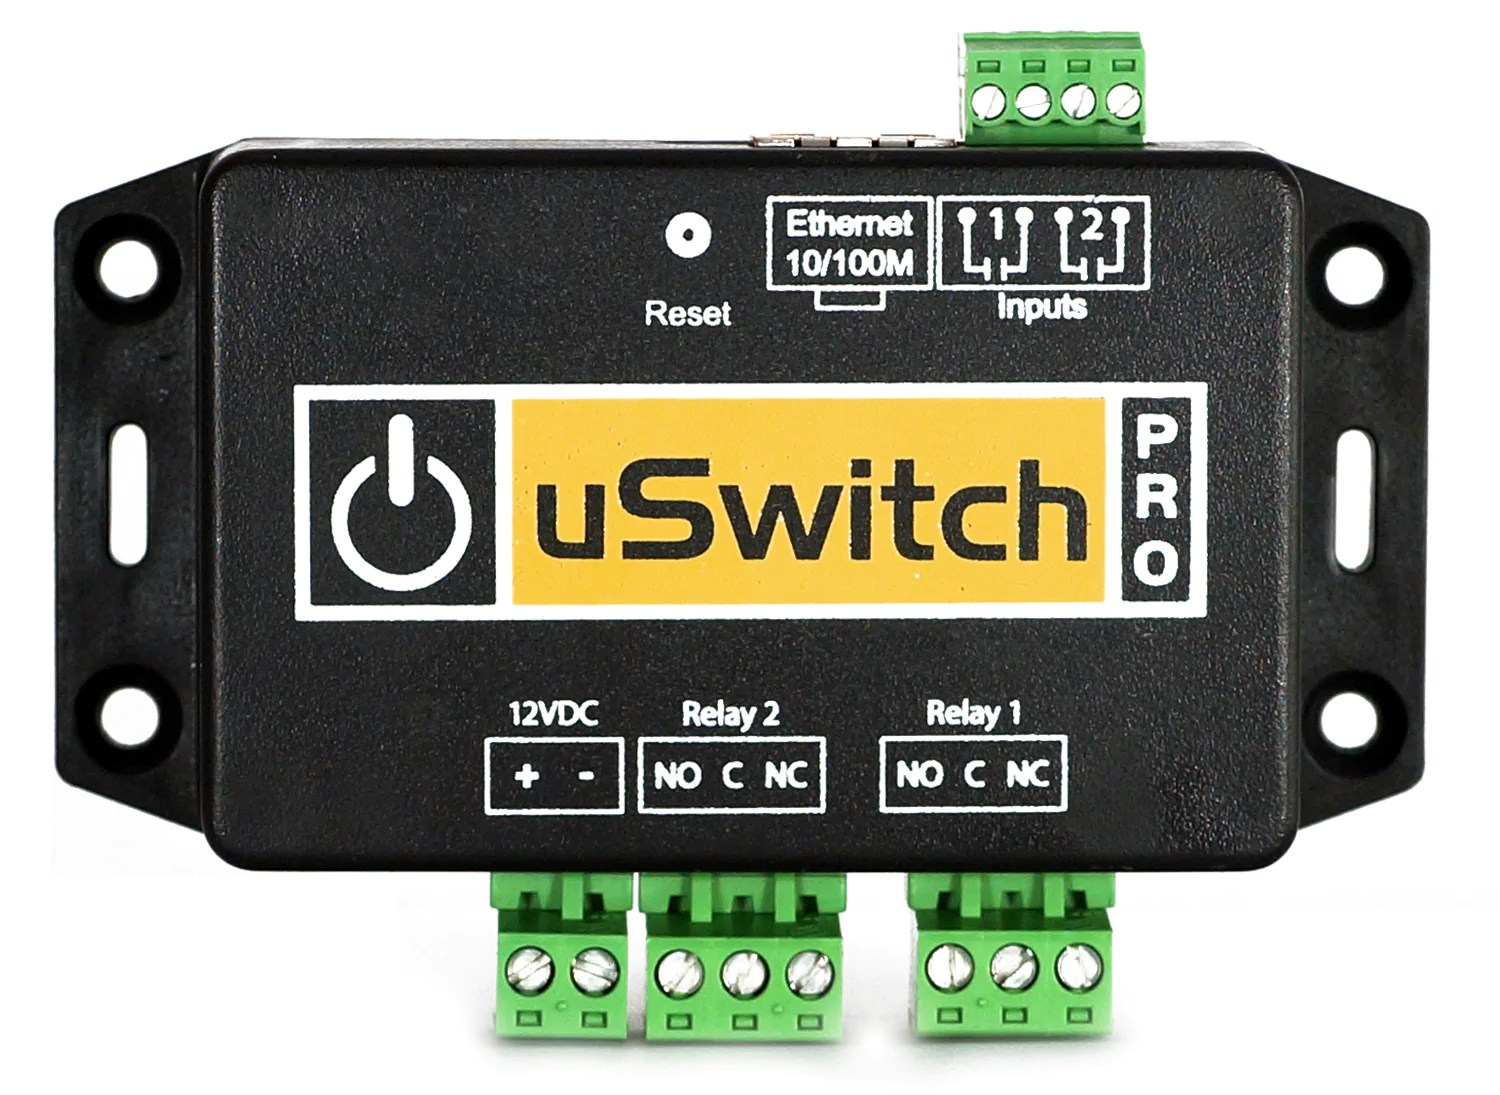 Pro User Uswitch Pro User Customizable Gpio Inputs With Control At The